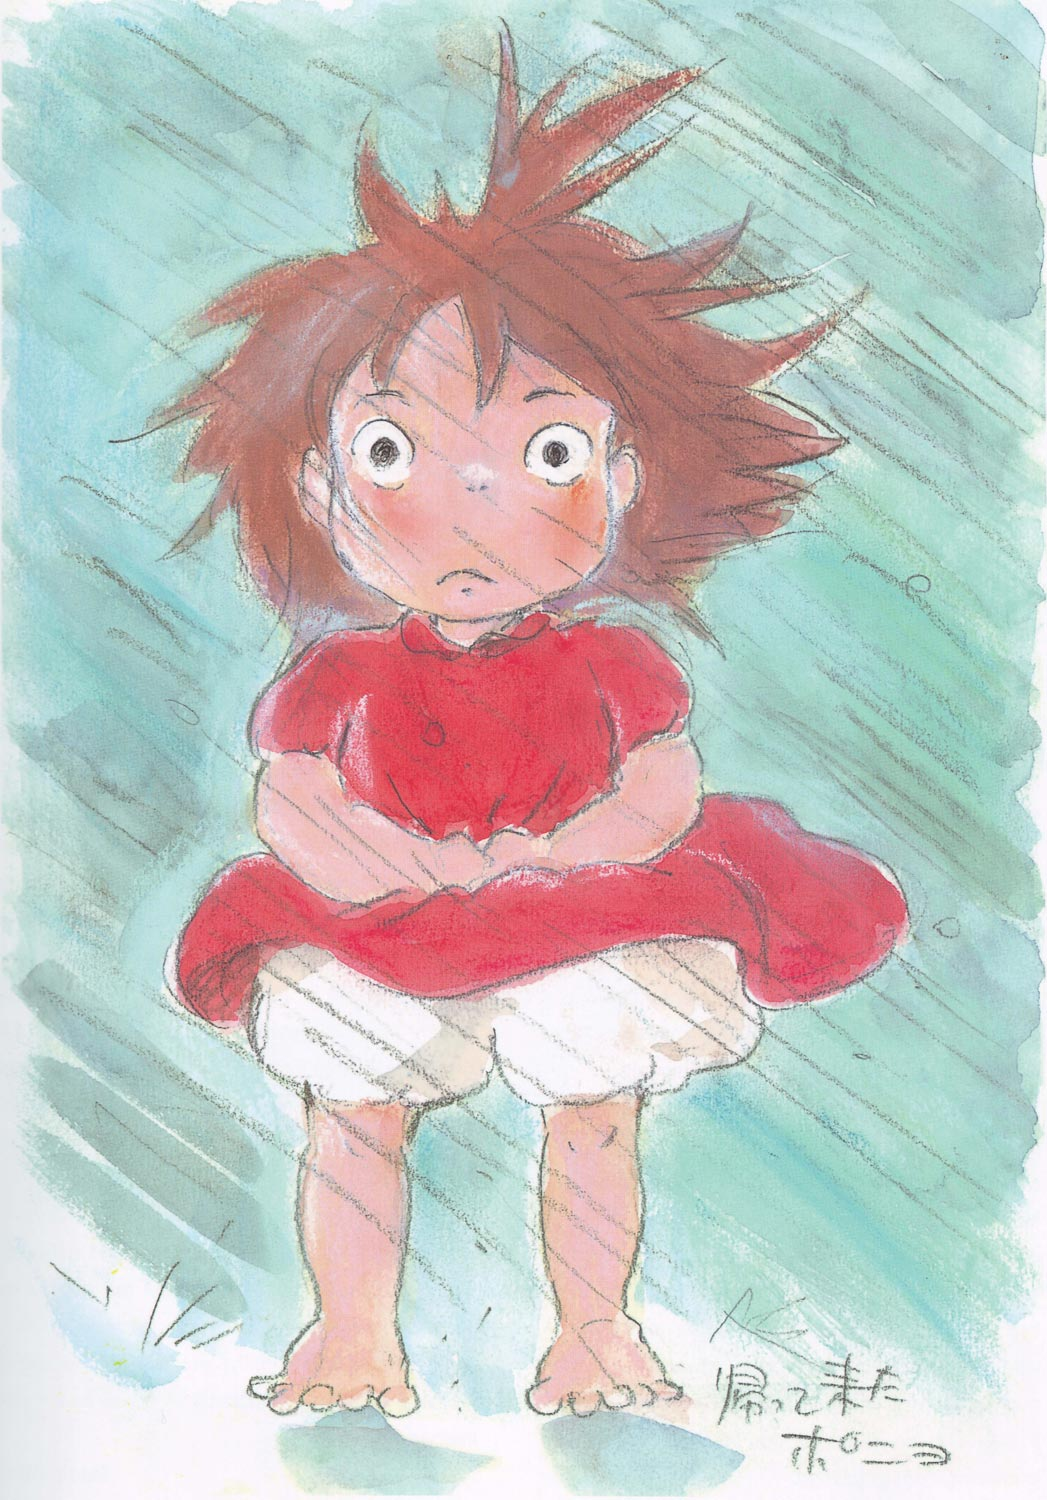 ponyo_on_the_cliff_by_the_sea_artwork_character__01.jpg